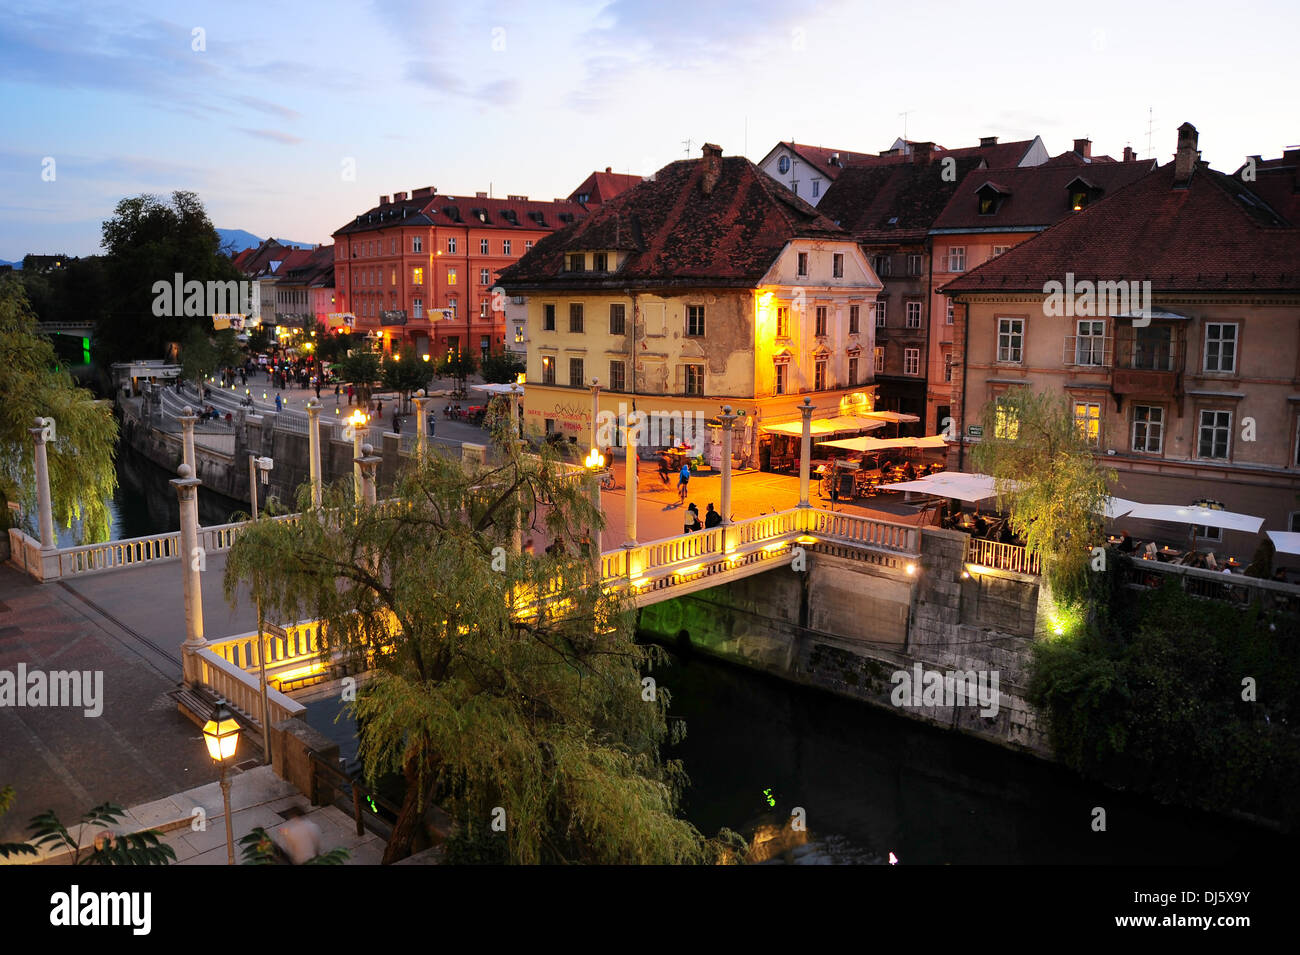 People walking at old town embankment in Ljubljana. - Stock Image